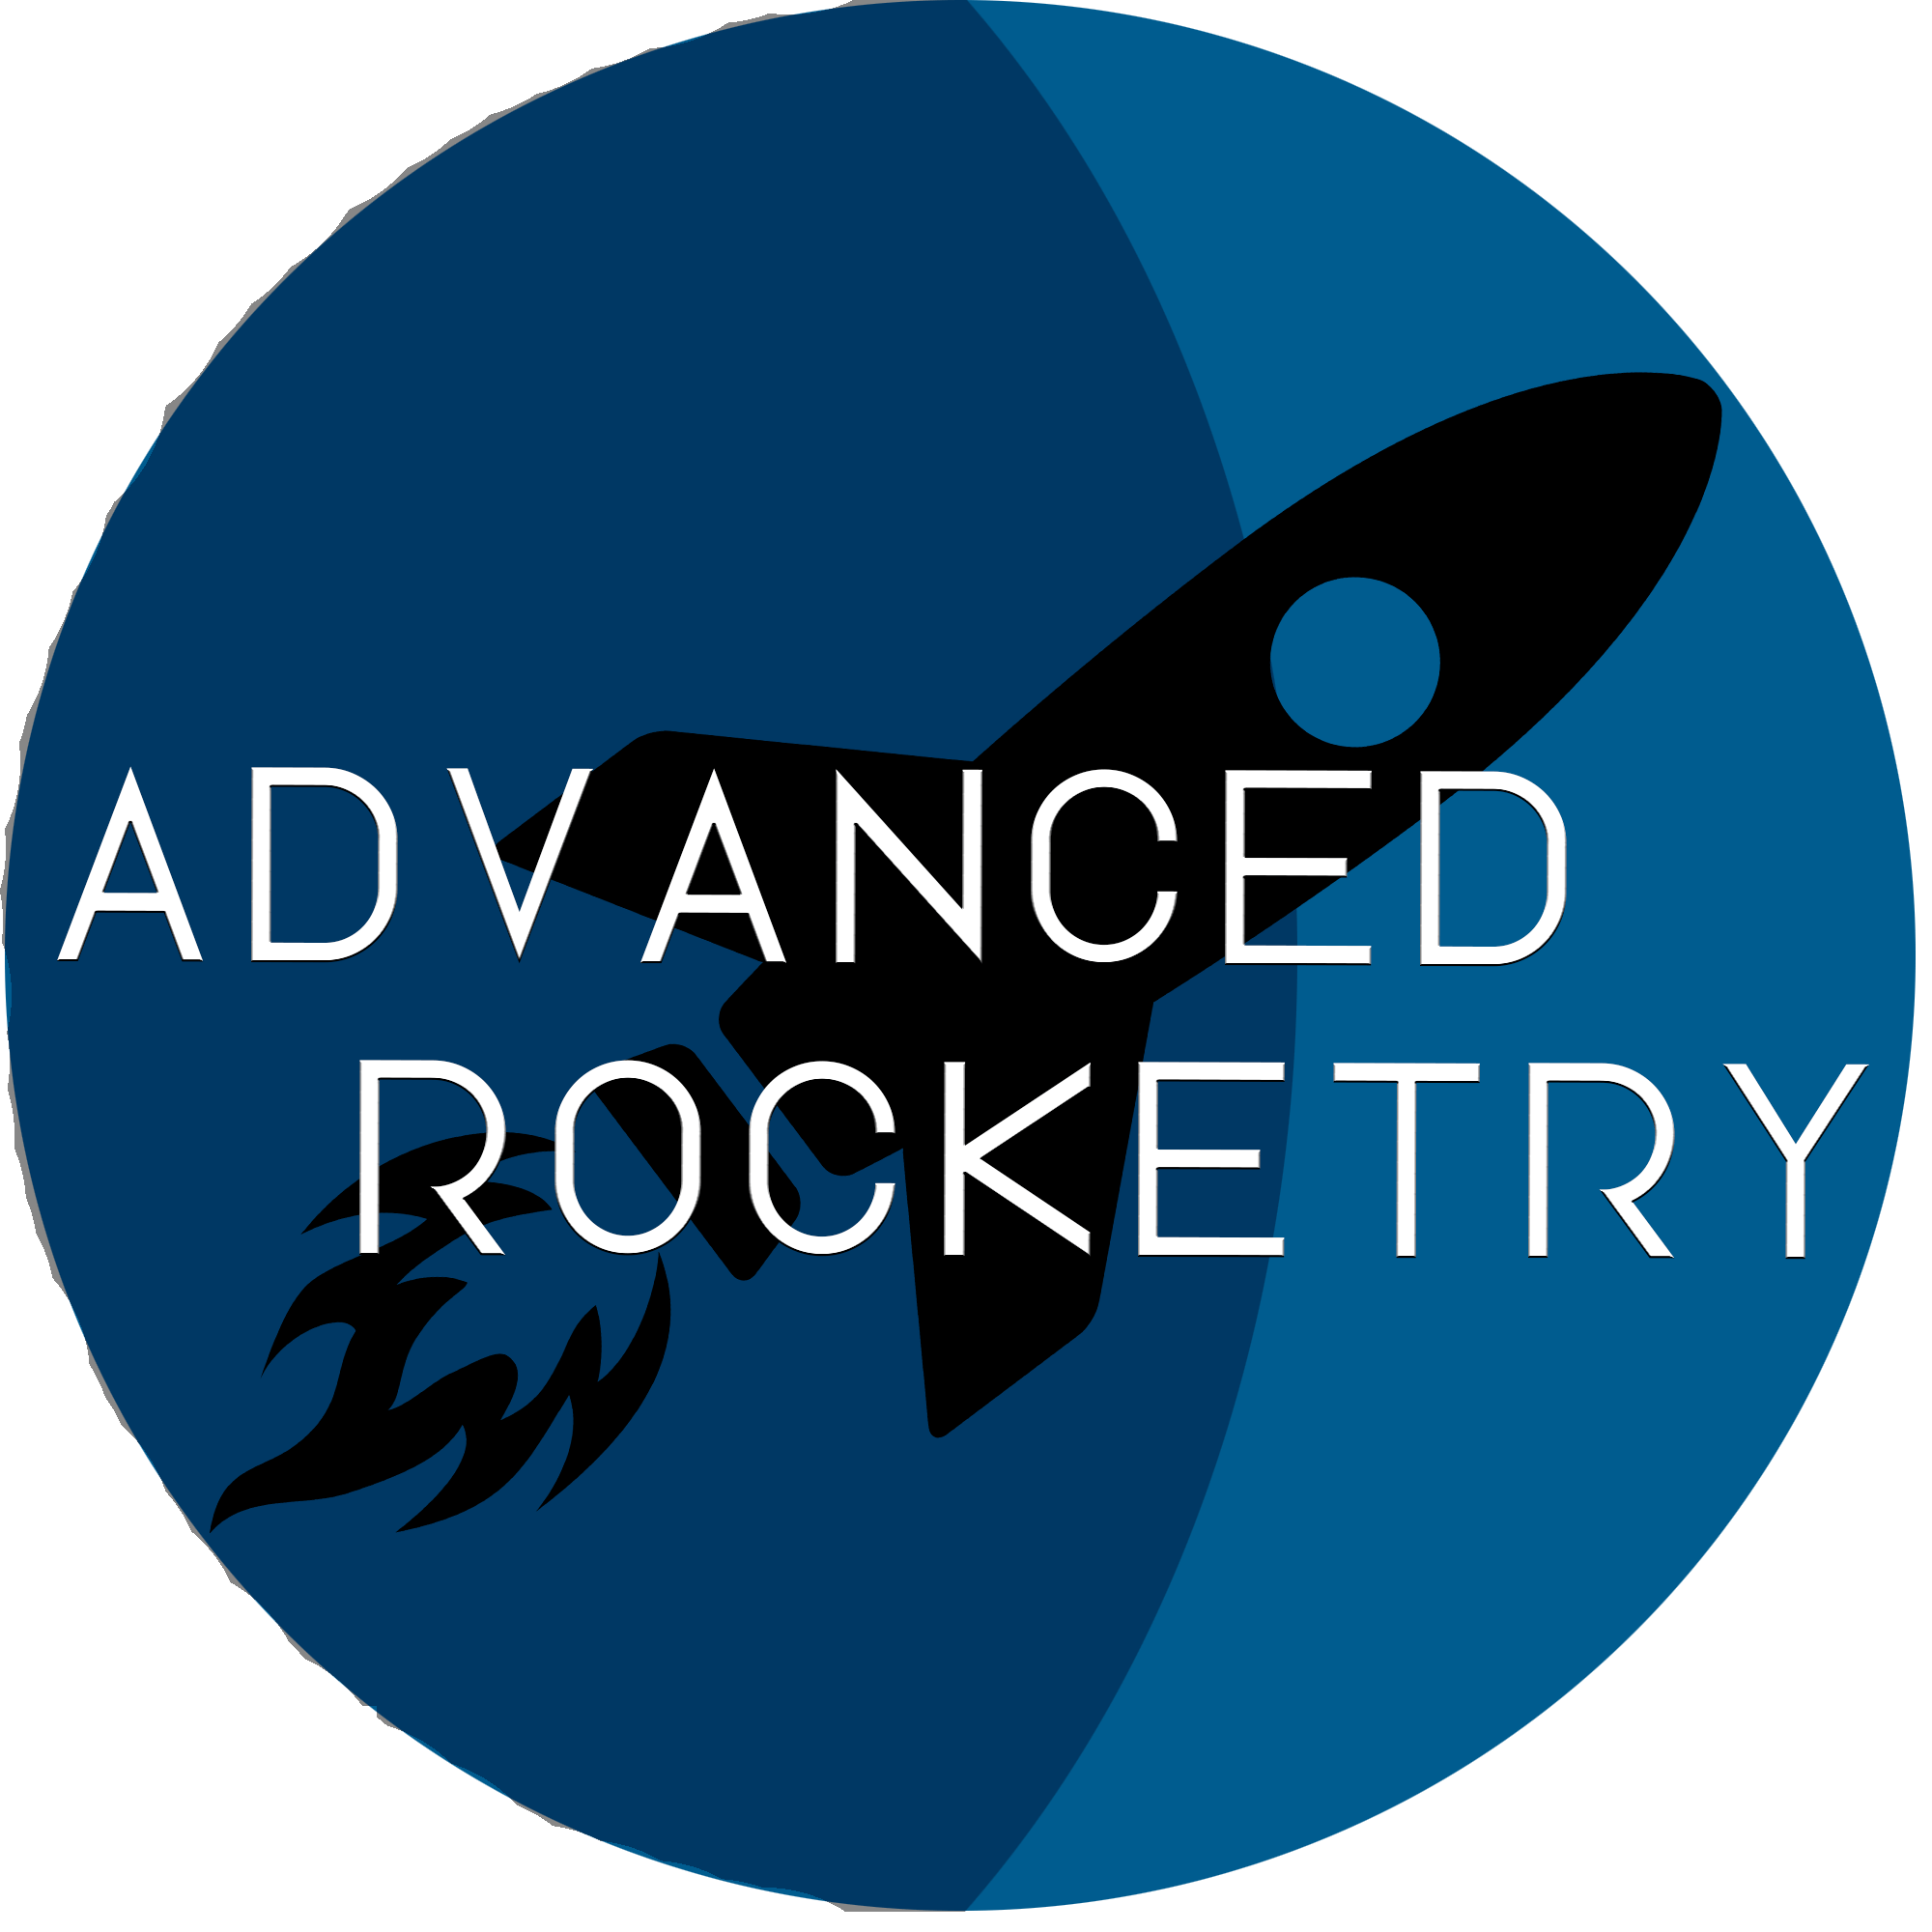 Advanced Rocketry скриншо т1